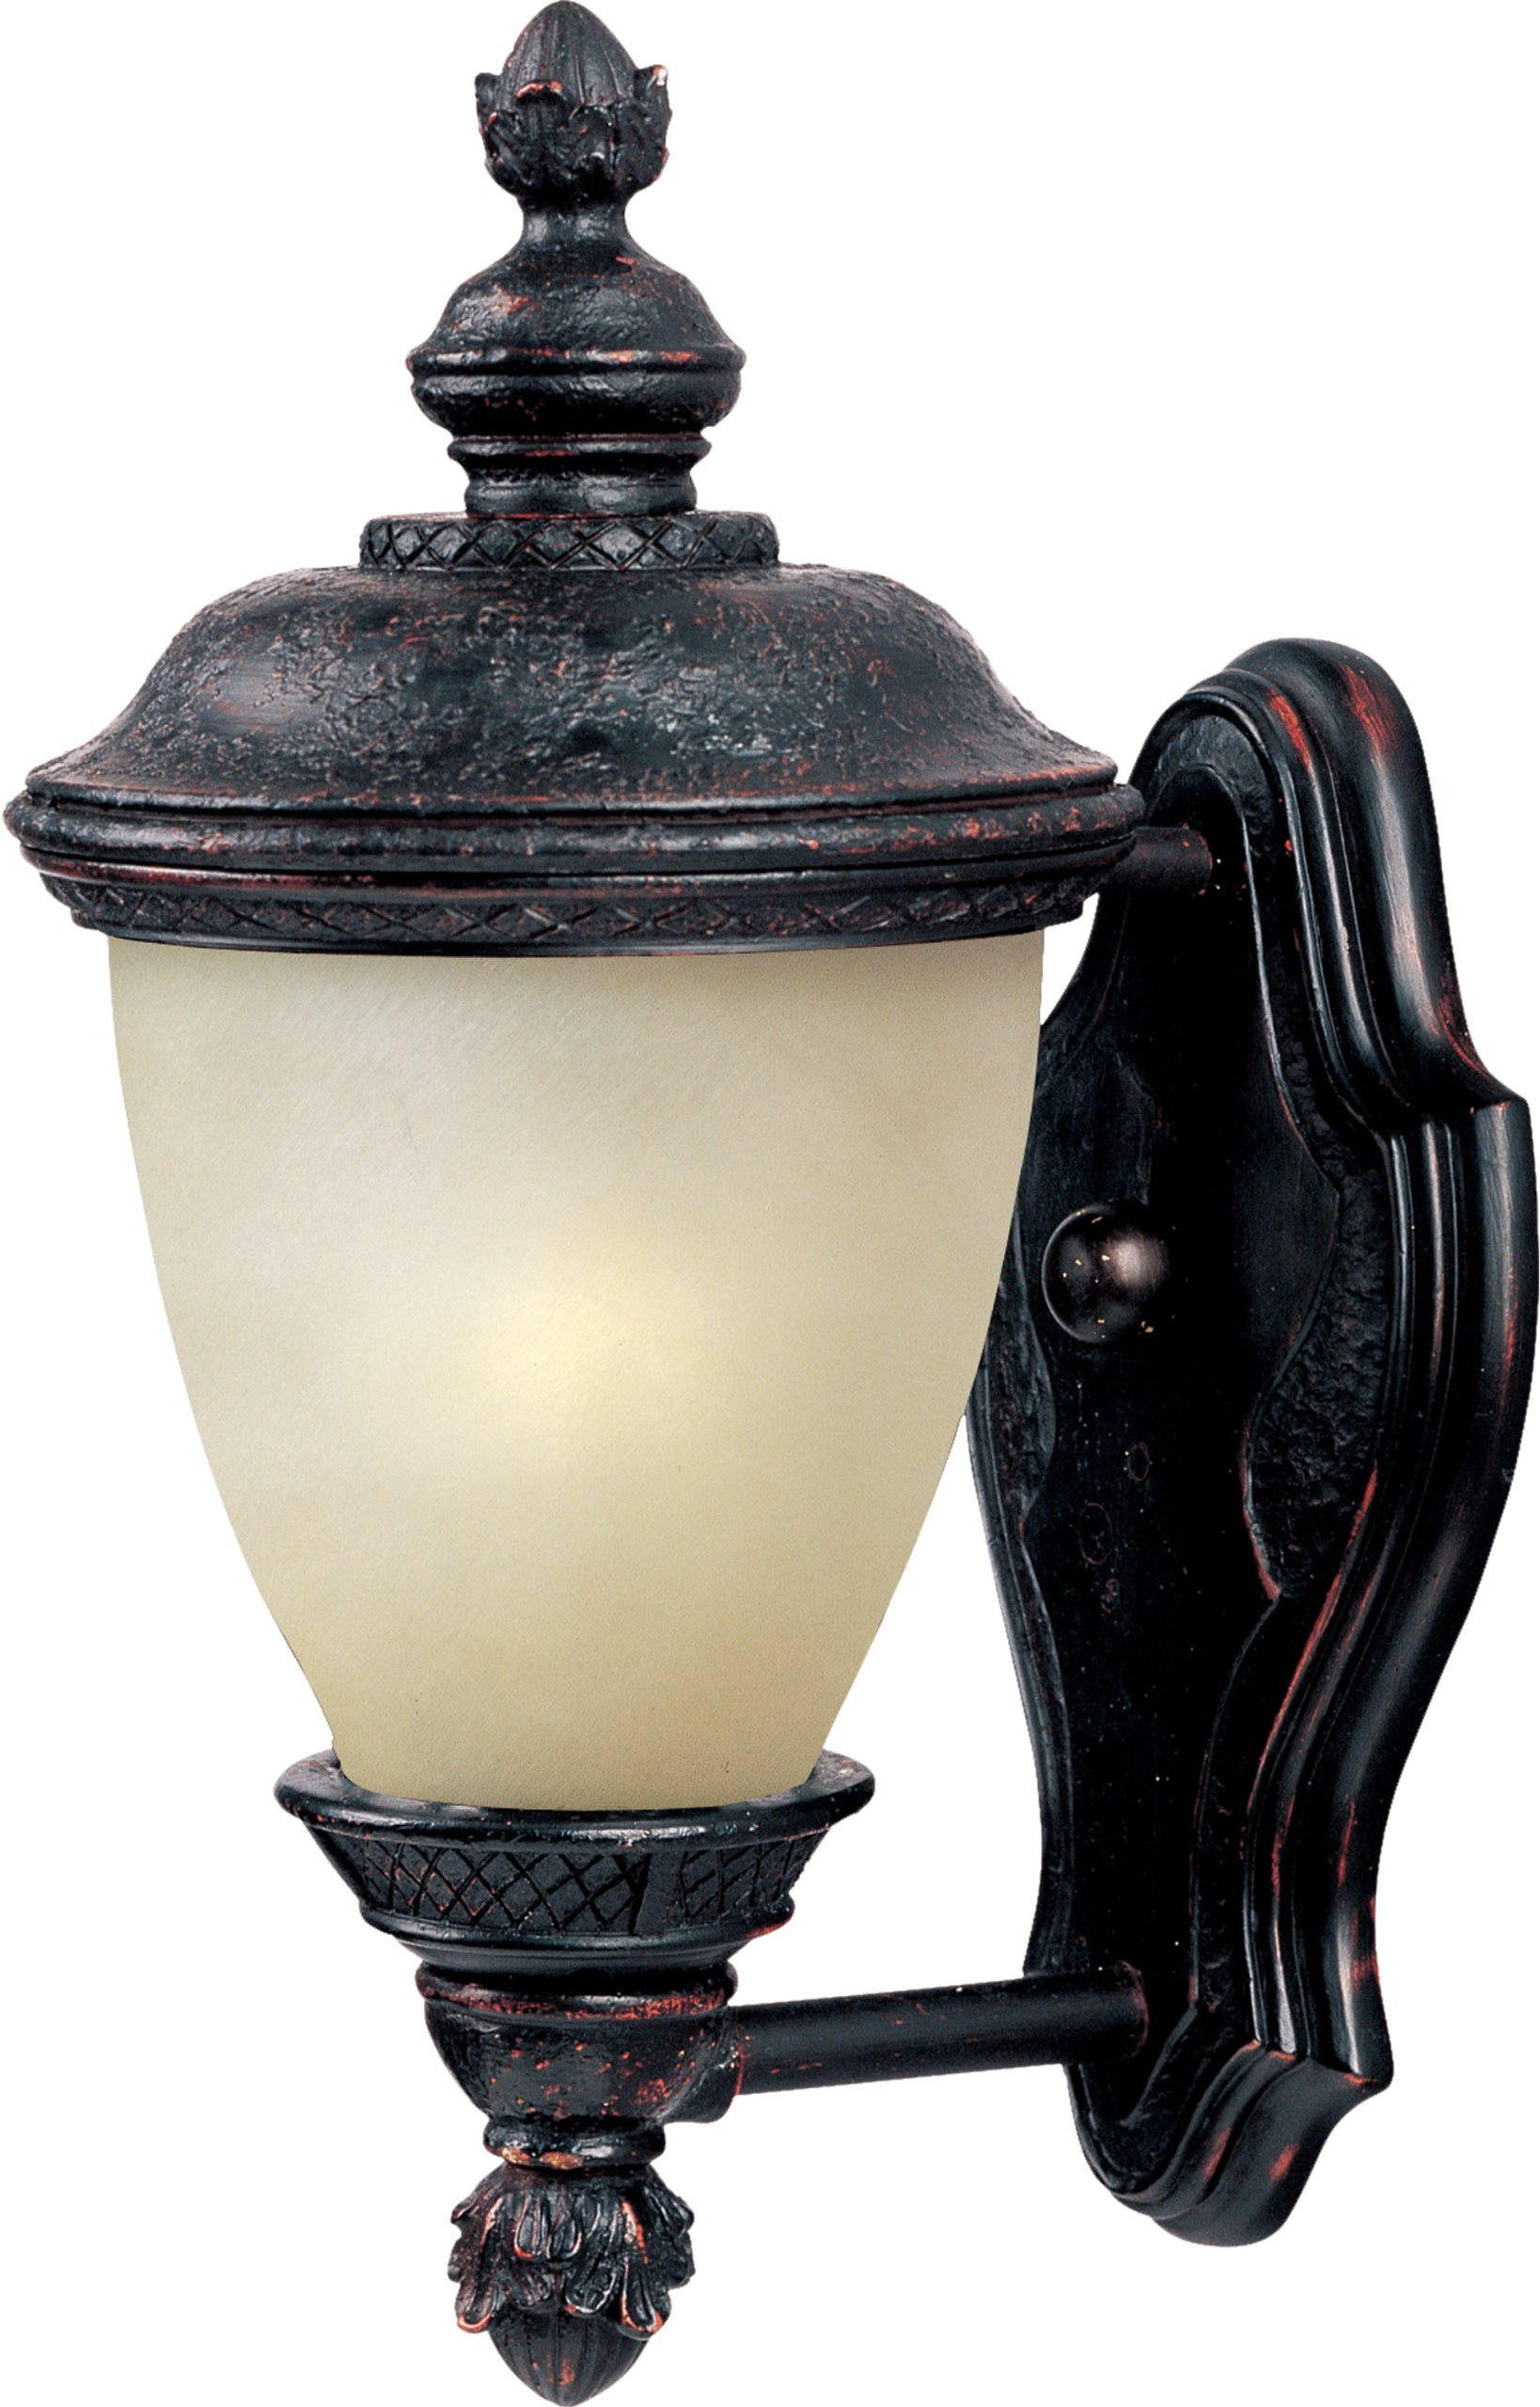 Maxim 86595MOOB Carriage House EE 1-Light Outdoor Wall Lantern, Oriental Bronze Finish, Mocha Glass, GU24 Fluorescent Fluorescent Bulb , 60W Max., Dry Safety Rating, Standard Dimmable, Glass Shade Material, 1344 Rated Lumens